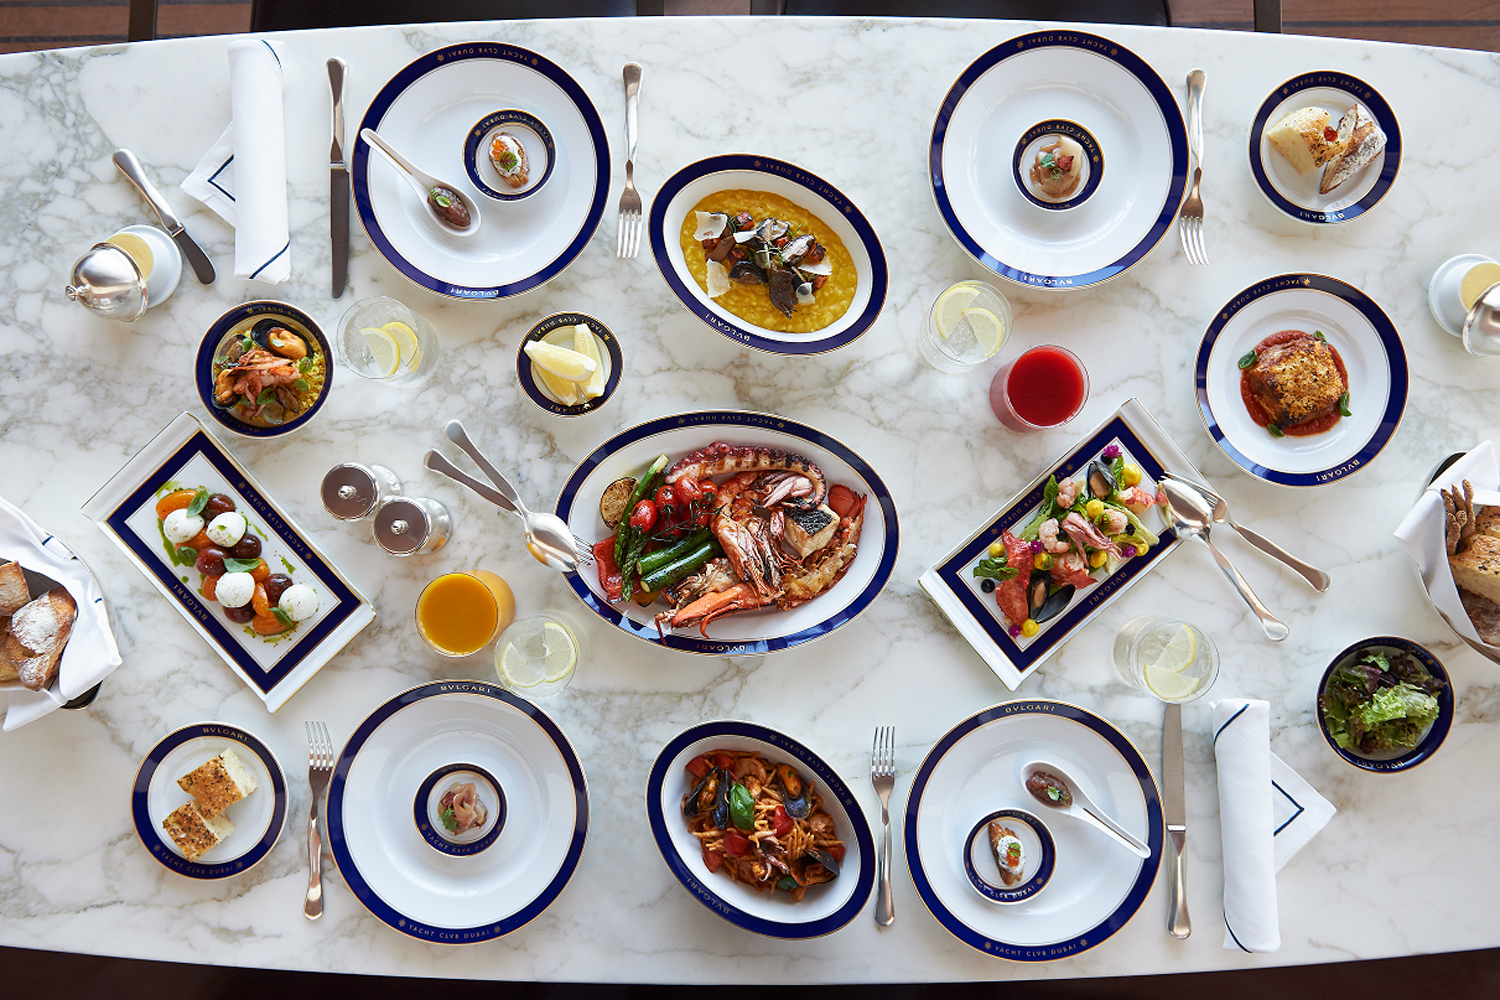 The Bvlgari Yacht Club restaurant has launched a new family-friendly brunch